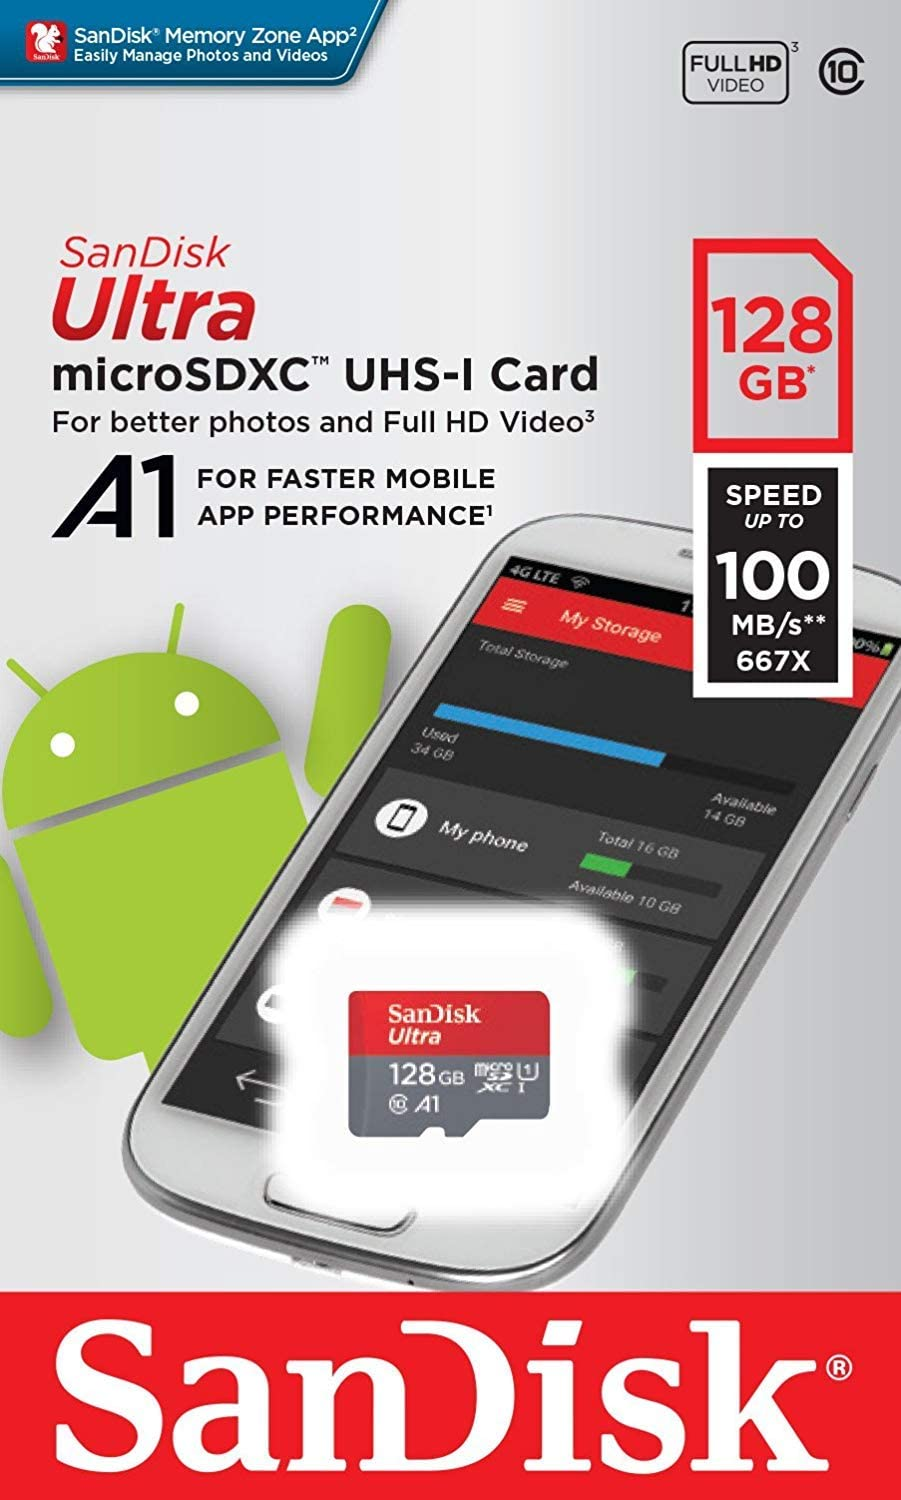 SanDisk Ultra 128GB MicroSDXC Verified for Verykool Jet II SL5008 by SanFlash 100MBs A1 U1 C10 Works with SanDisk